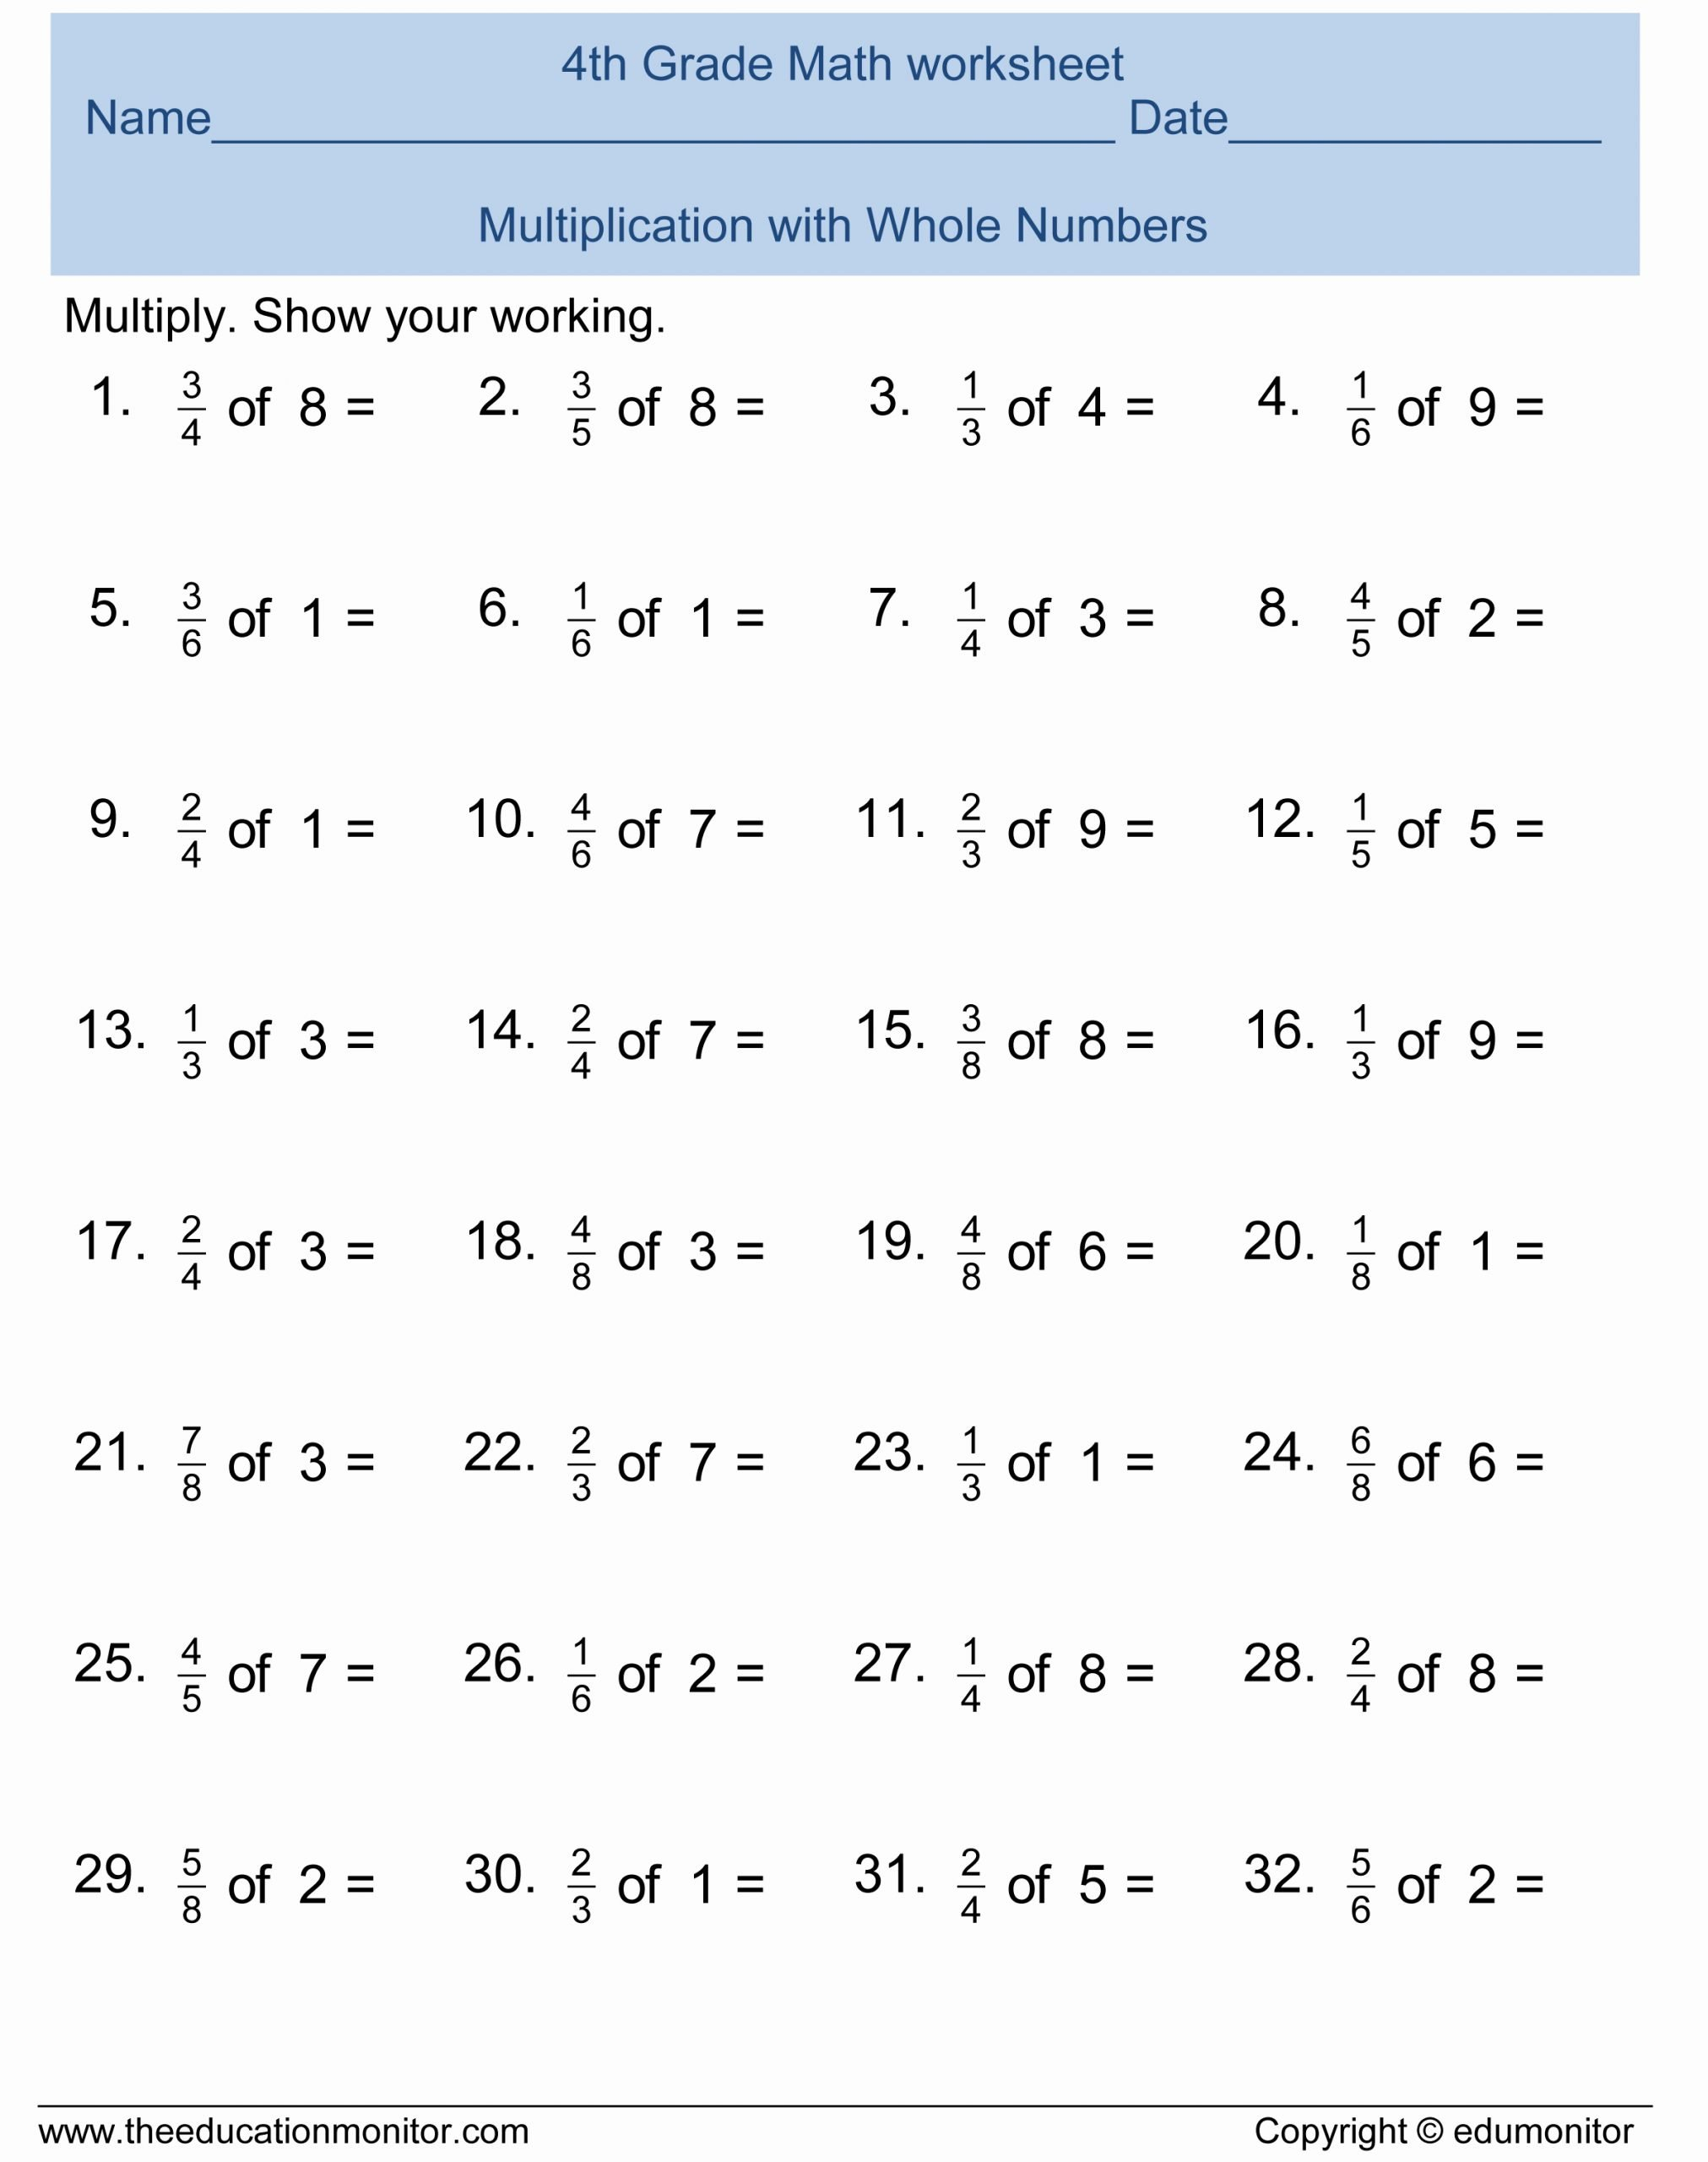 Math 4th Grade Multiplication Worksheets Best Of Printables Free Printable Math Worksheets for 4th Grade